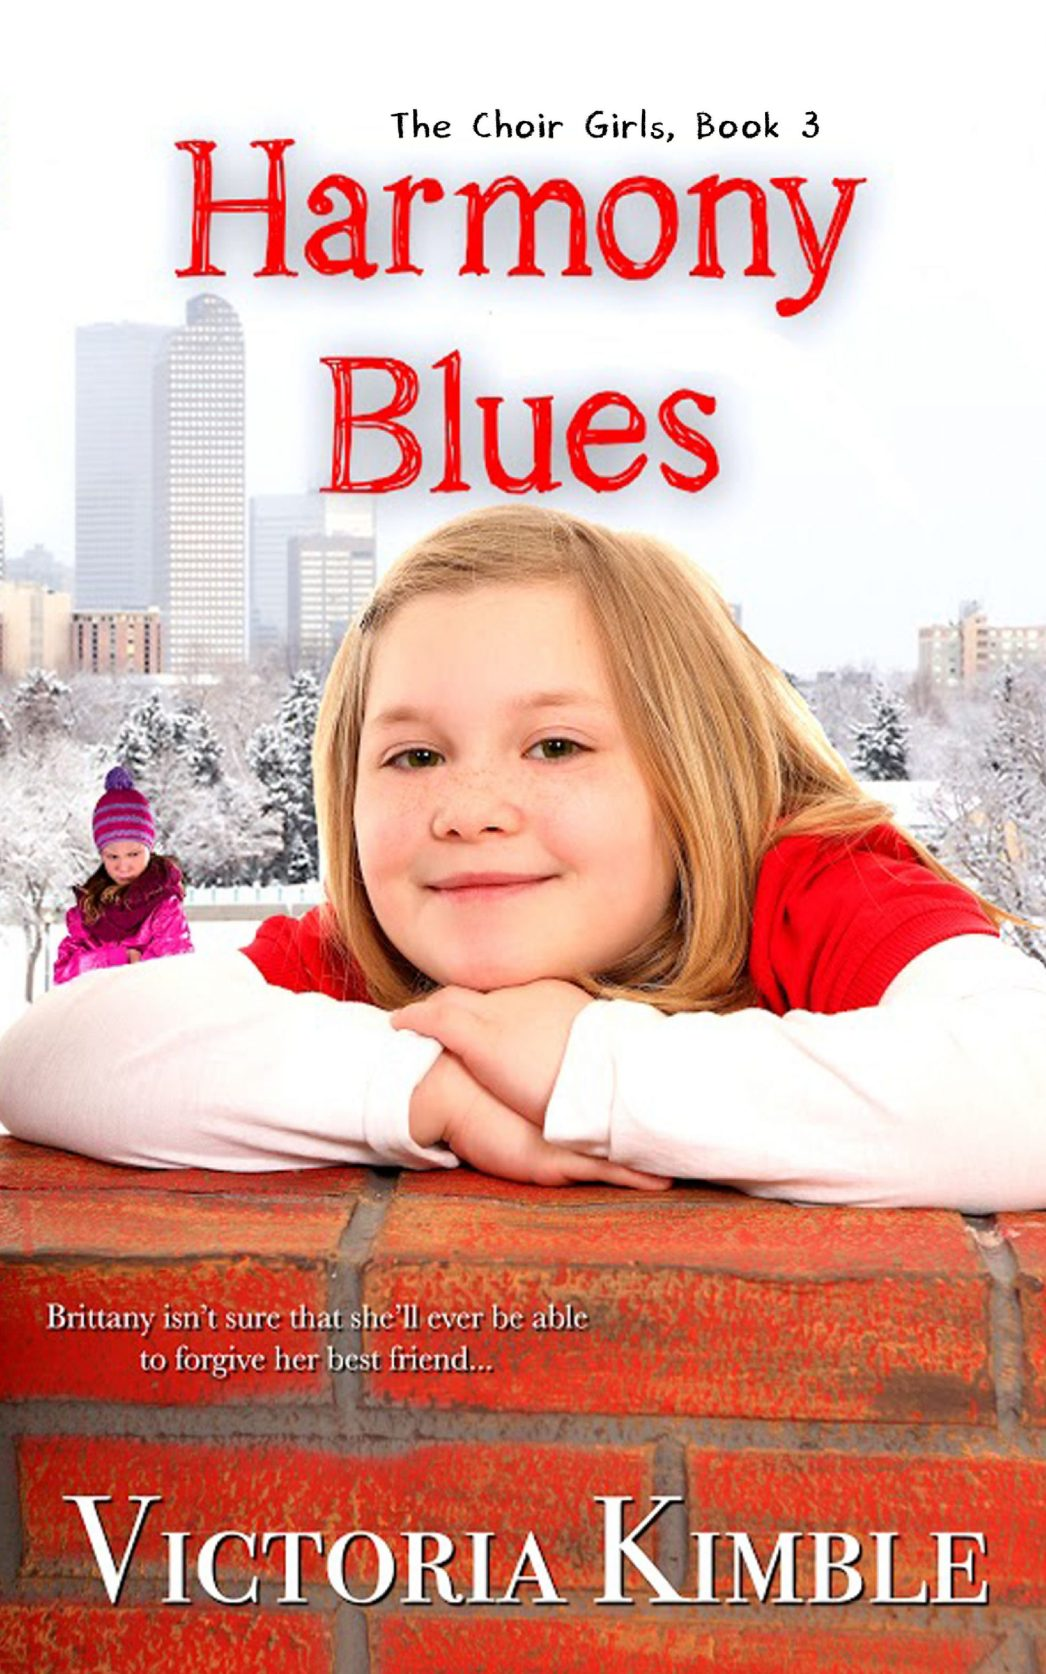 Harmony Blues, a book for pre-teen girls!